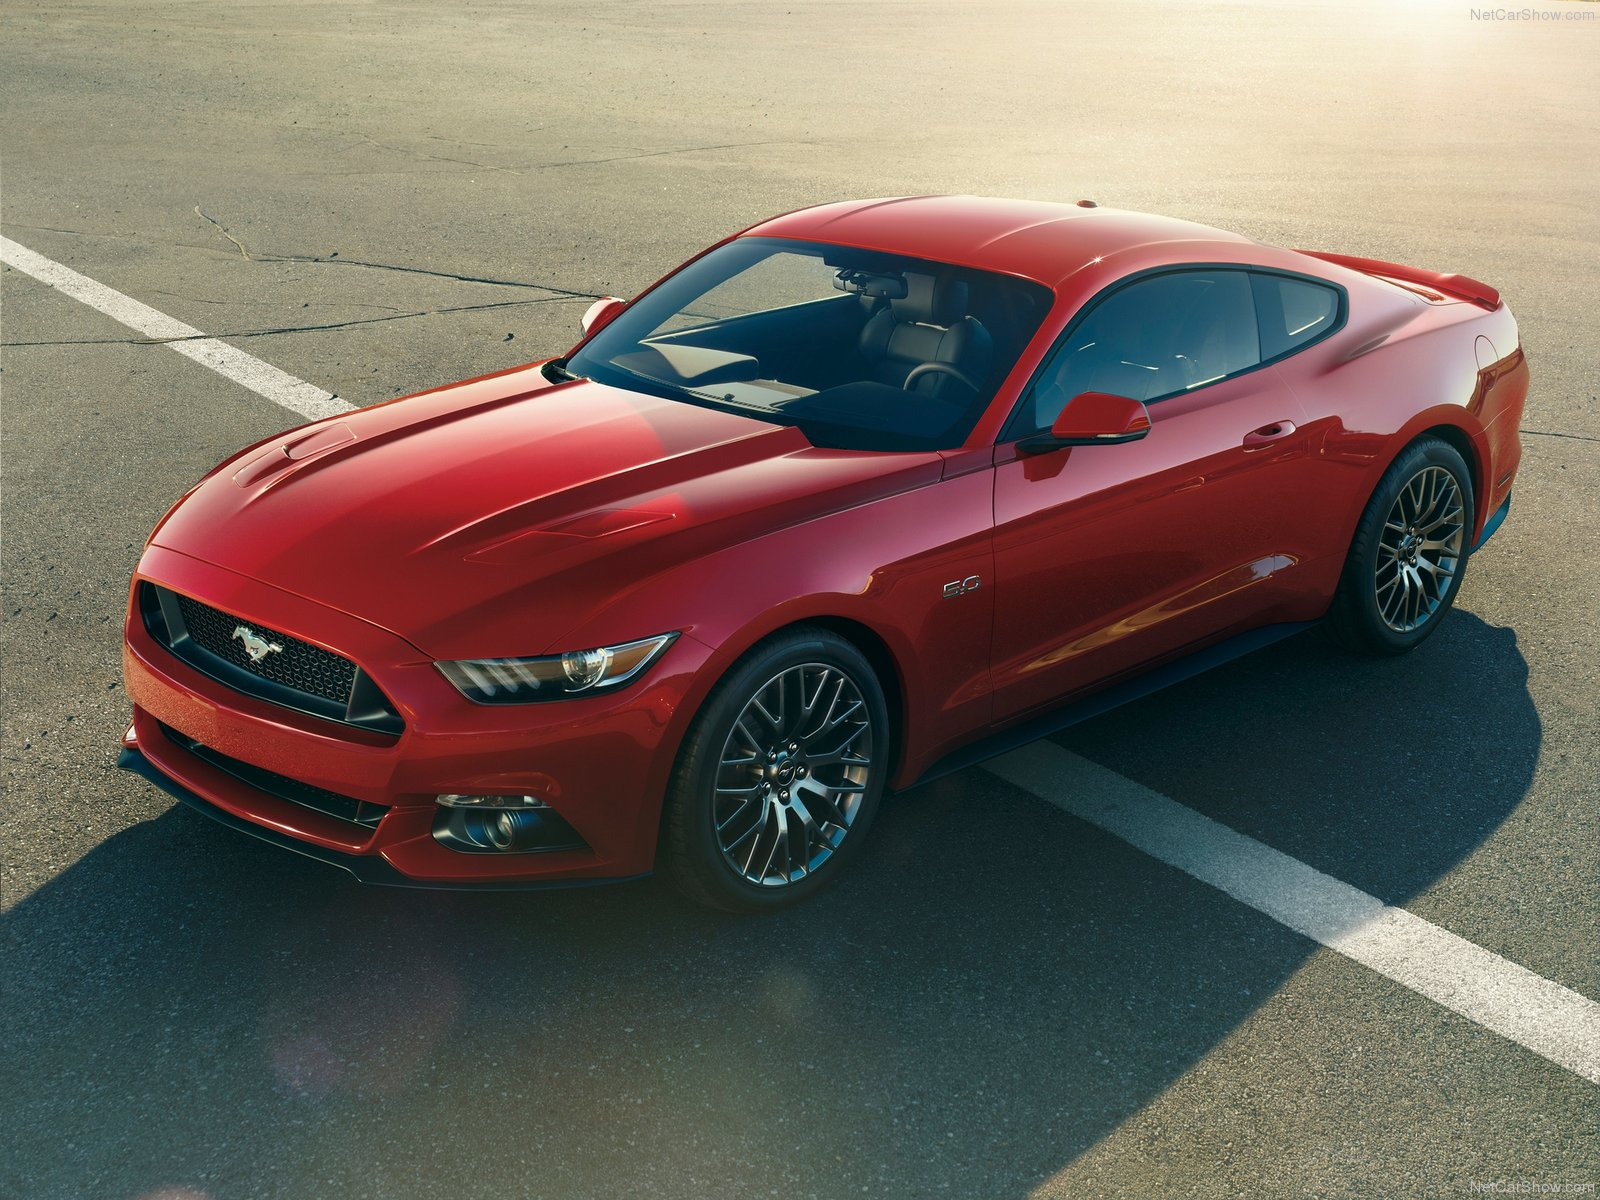 Ford-Mustang_GT_2015_1600x1200_wallpaper_01.jpg